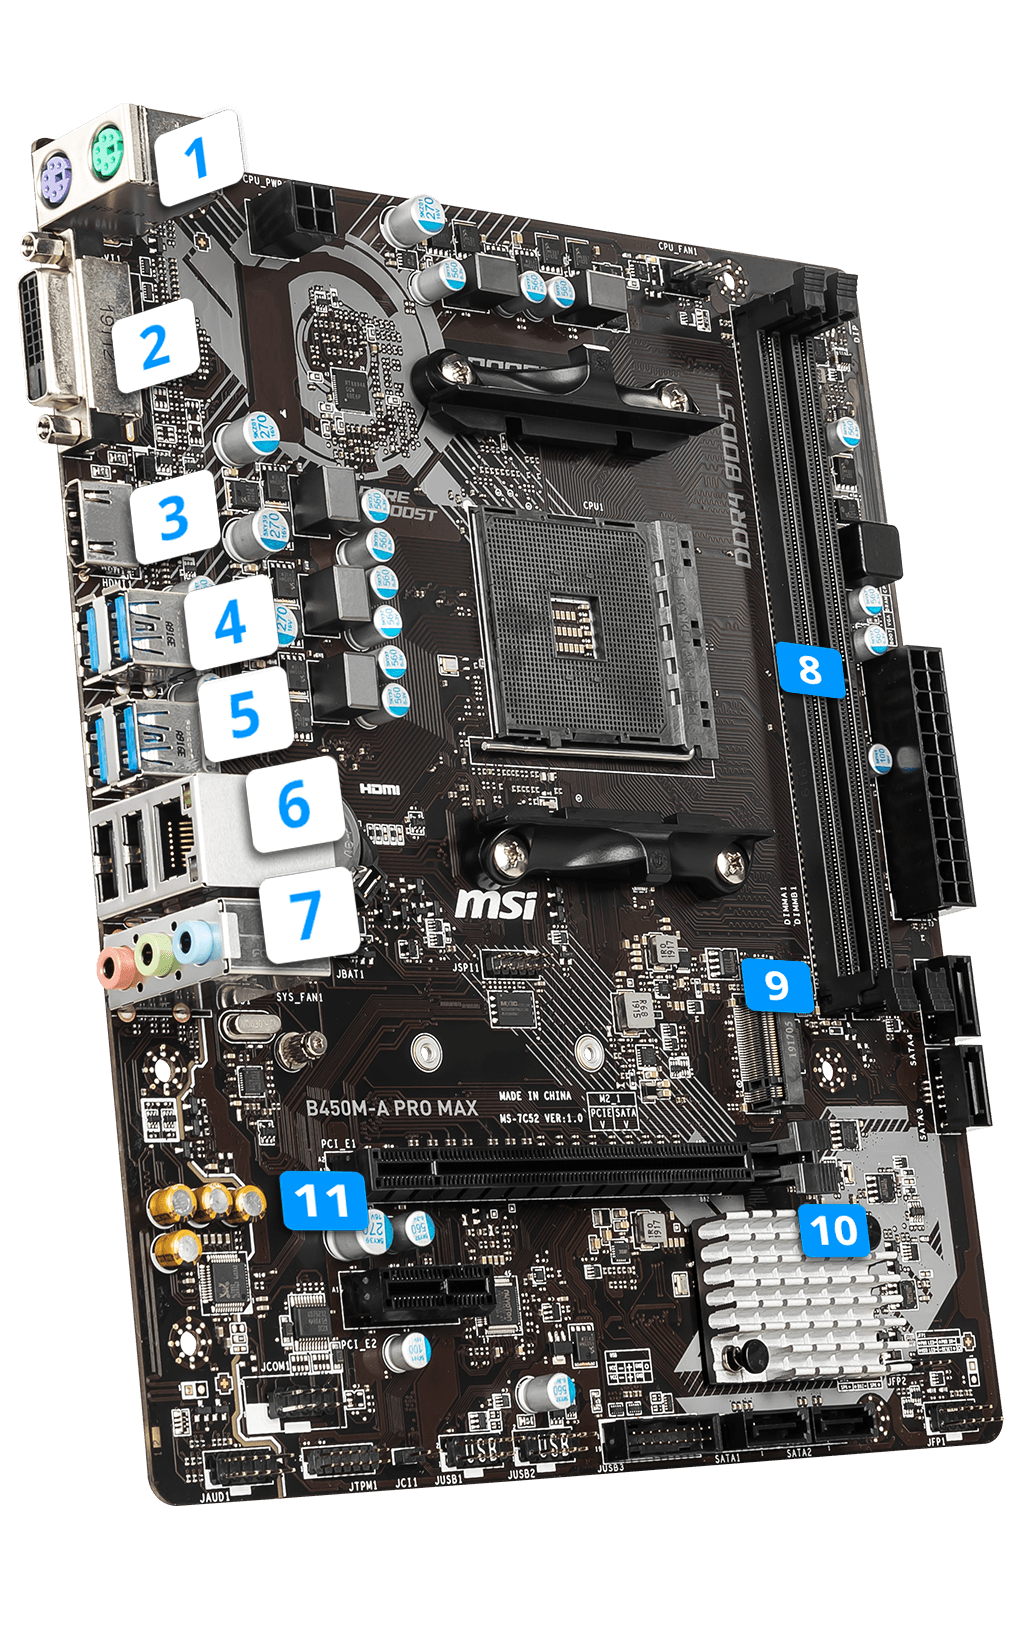 MSI B450M-A PRO MAX overview